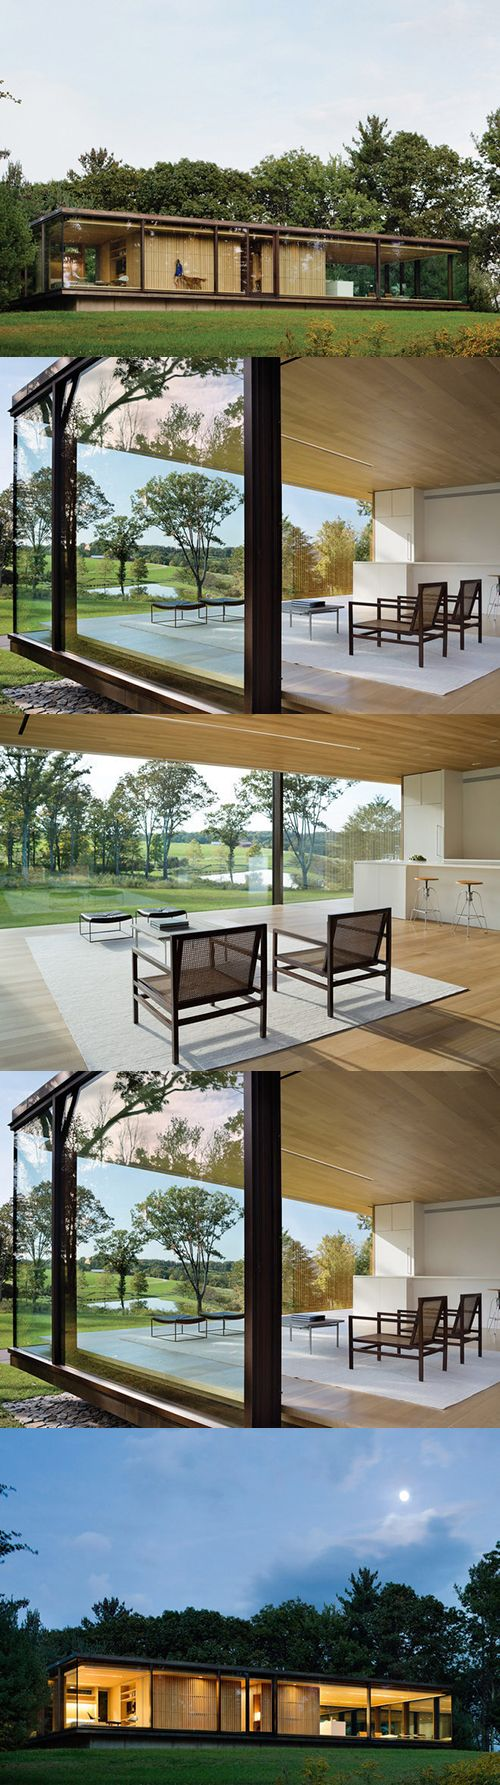 This prefab glass home makes a picture-perfect rural retreat with exposed metal structure, a light wood center core and minimalist furniture and decor.